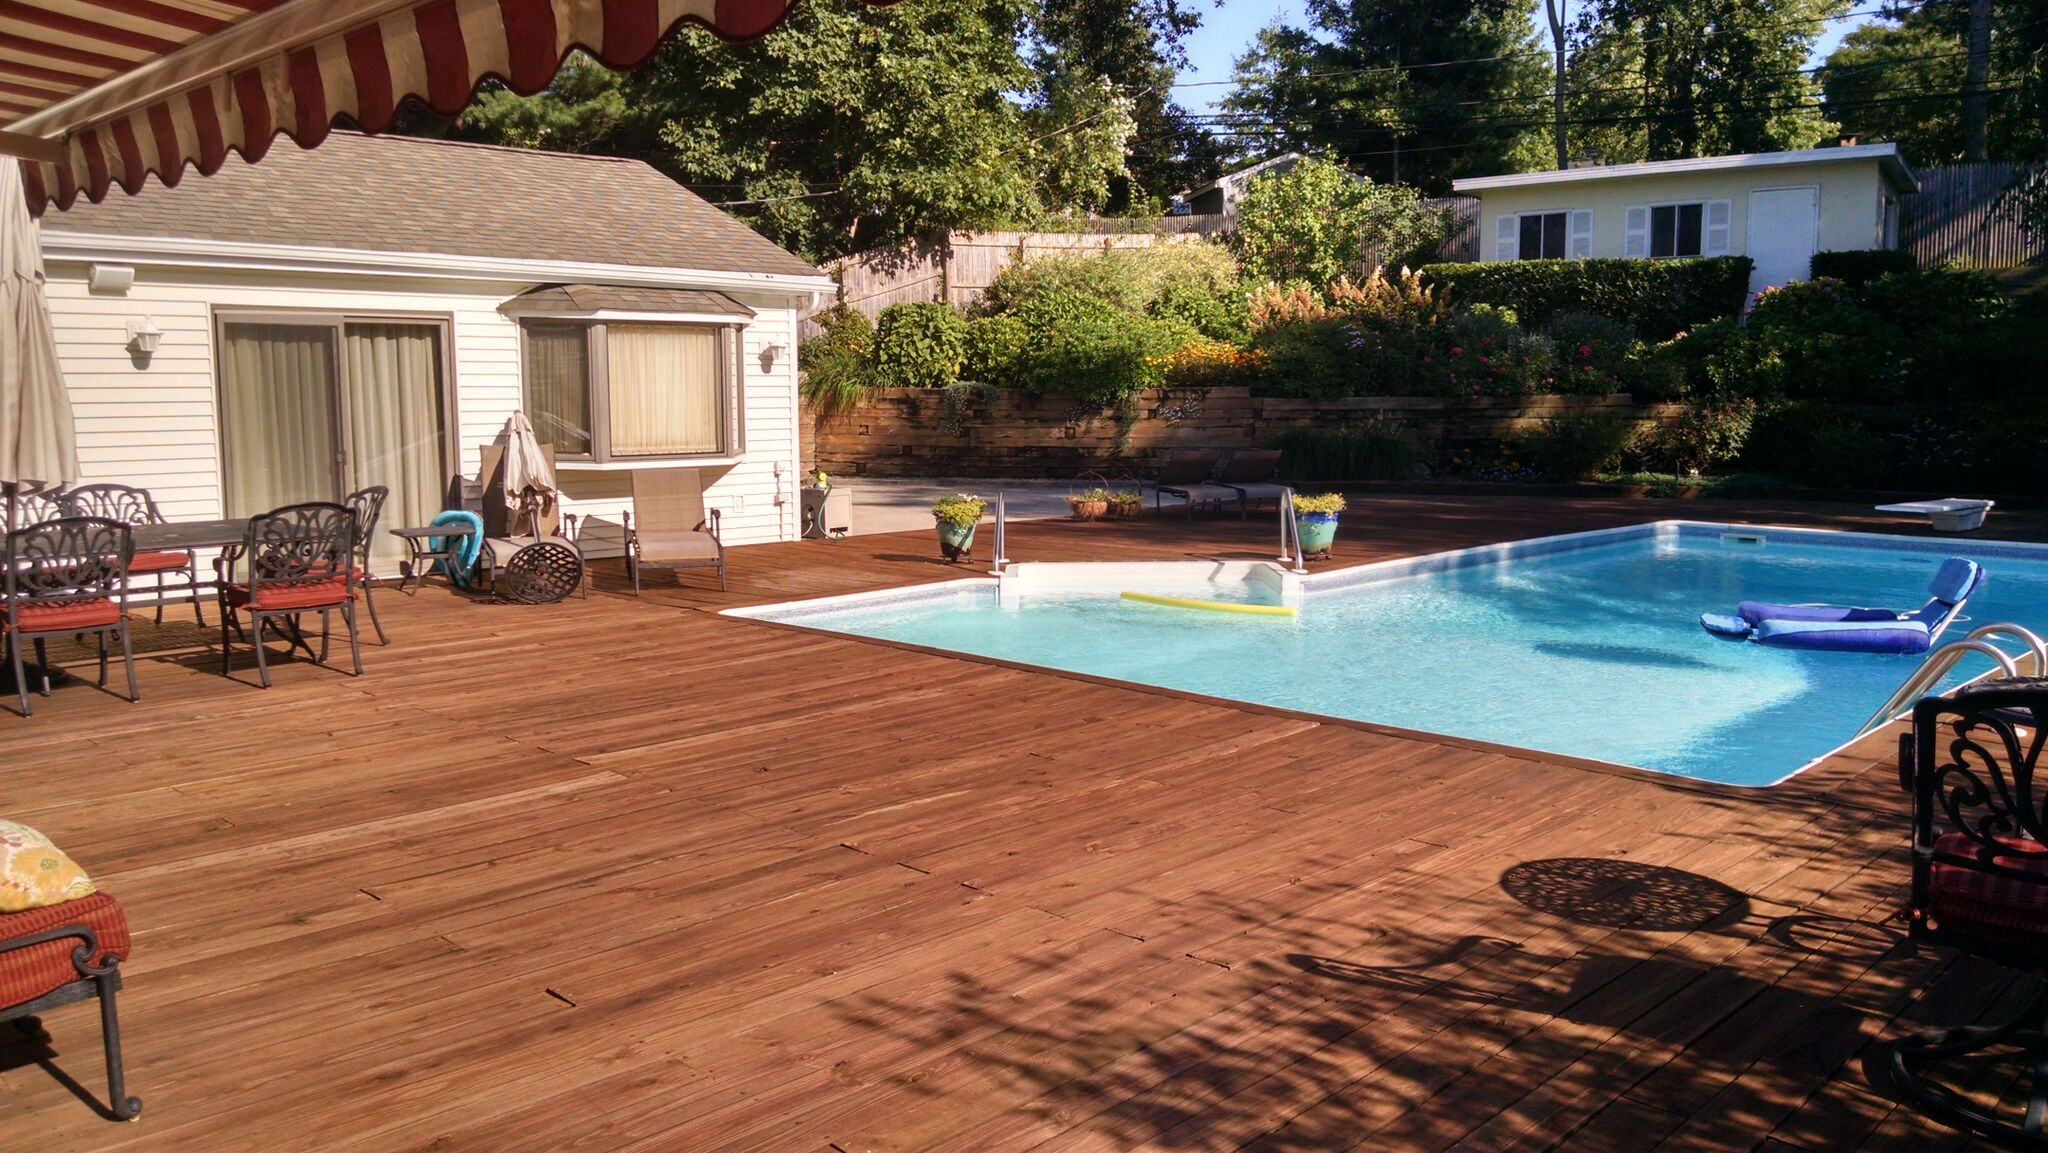 Old Pressure Treated Deck Boards: